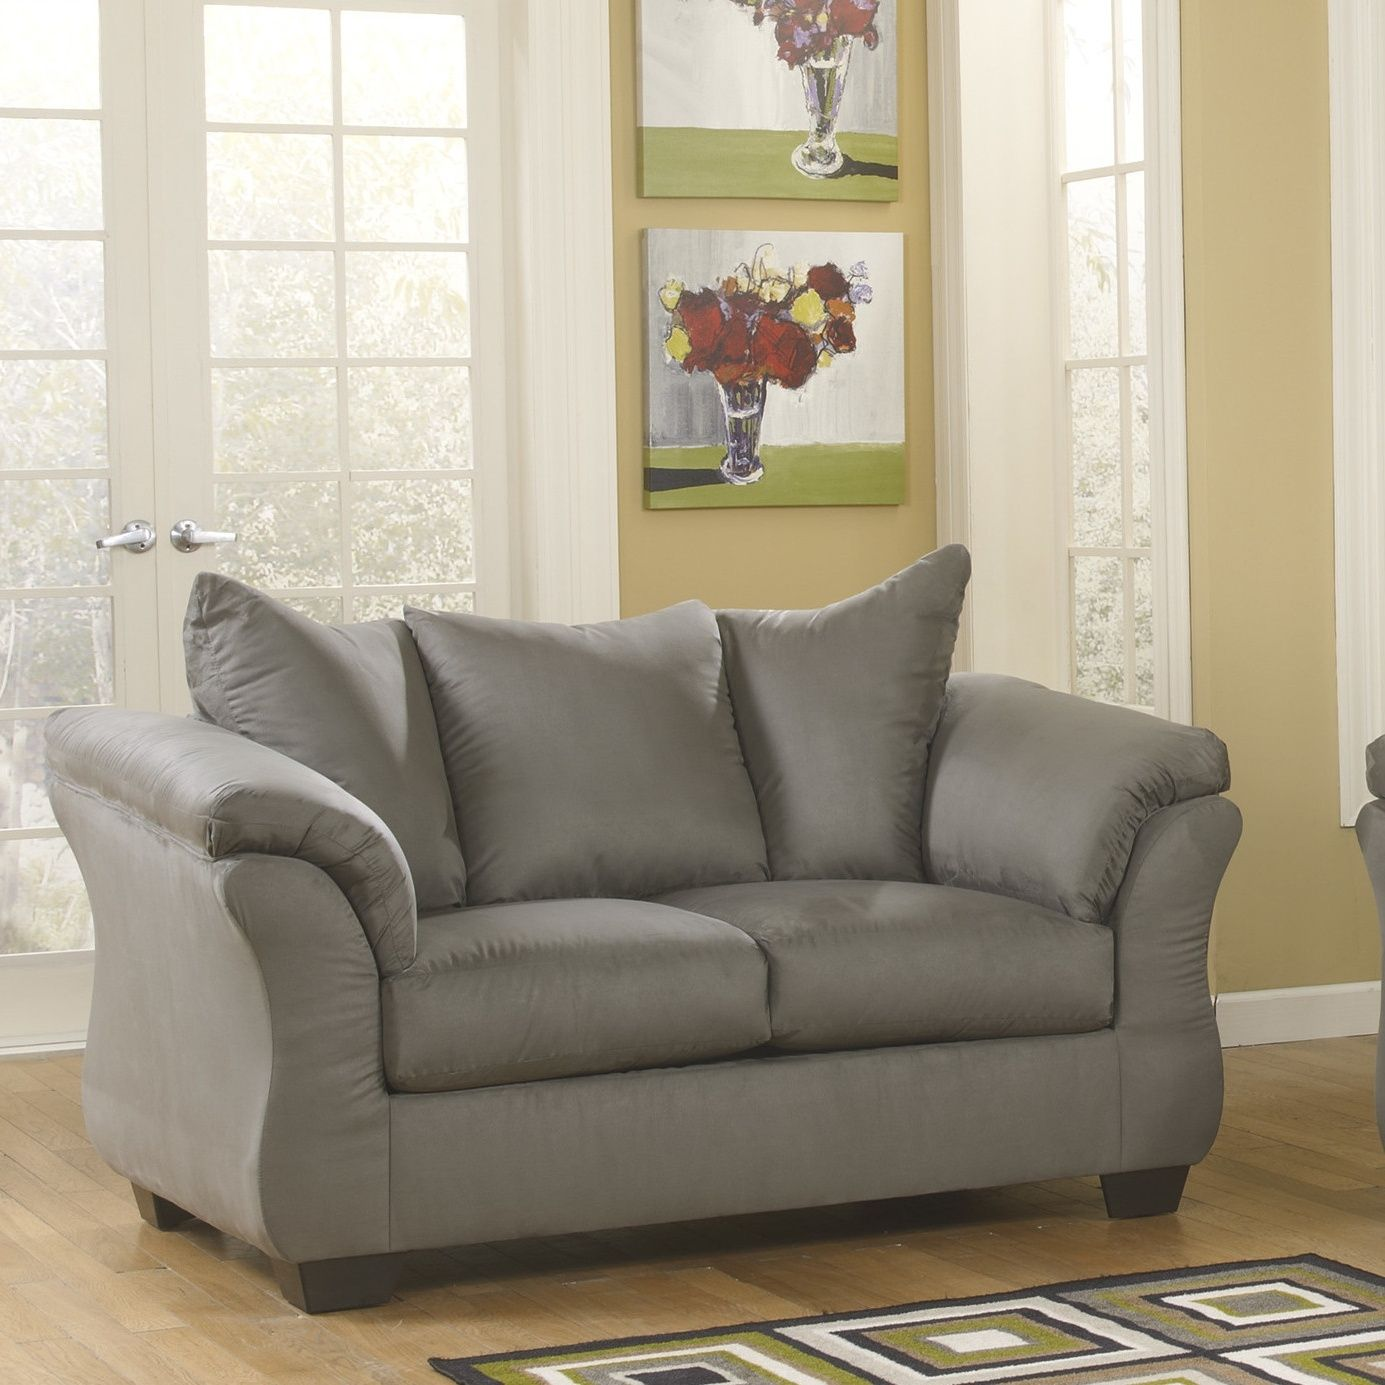 Cheap Couches For Sale Under 100 Home Design In 2019 Sofa